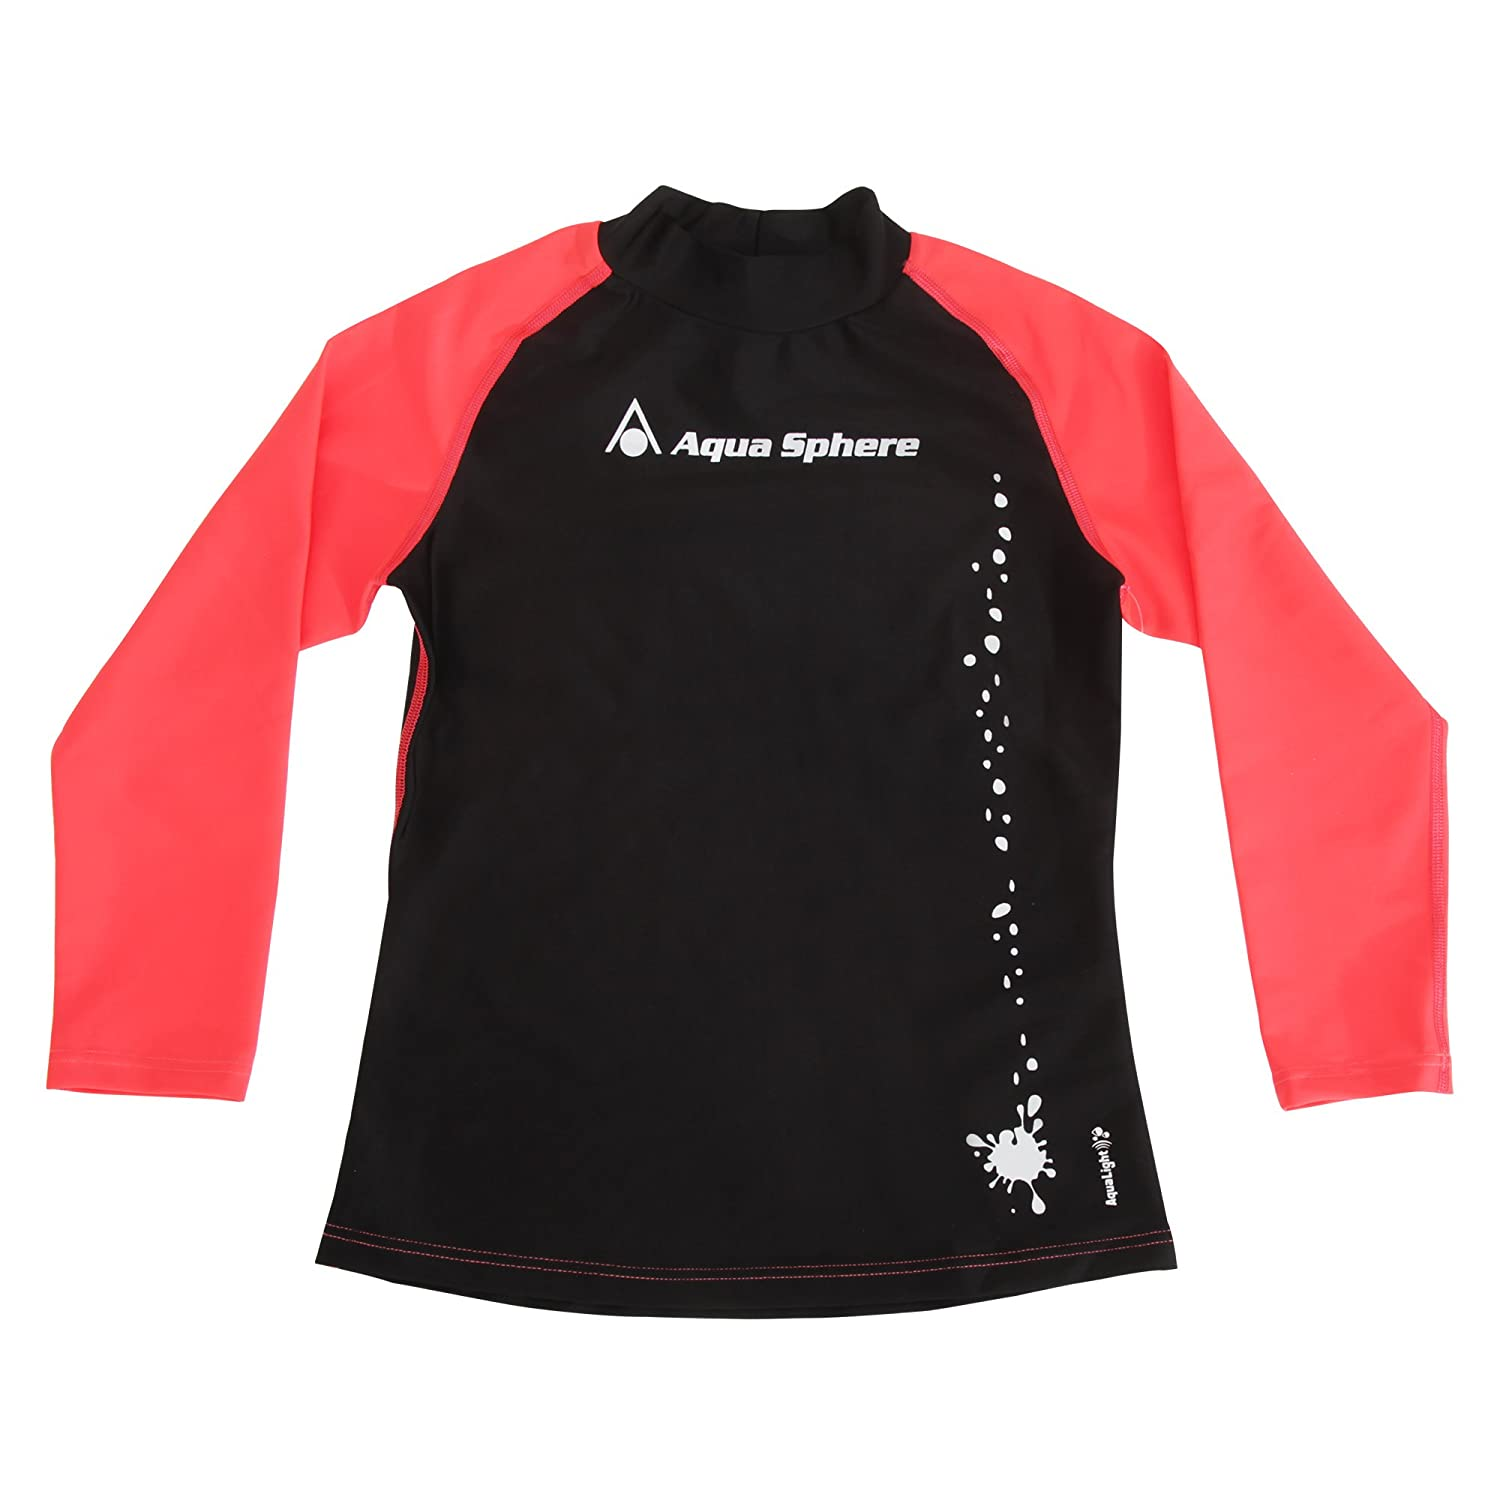 Aqua Sphere Childrens Girls Long Sleeve Swimming Rashguard Top